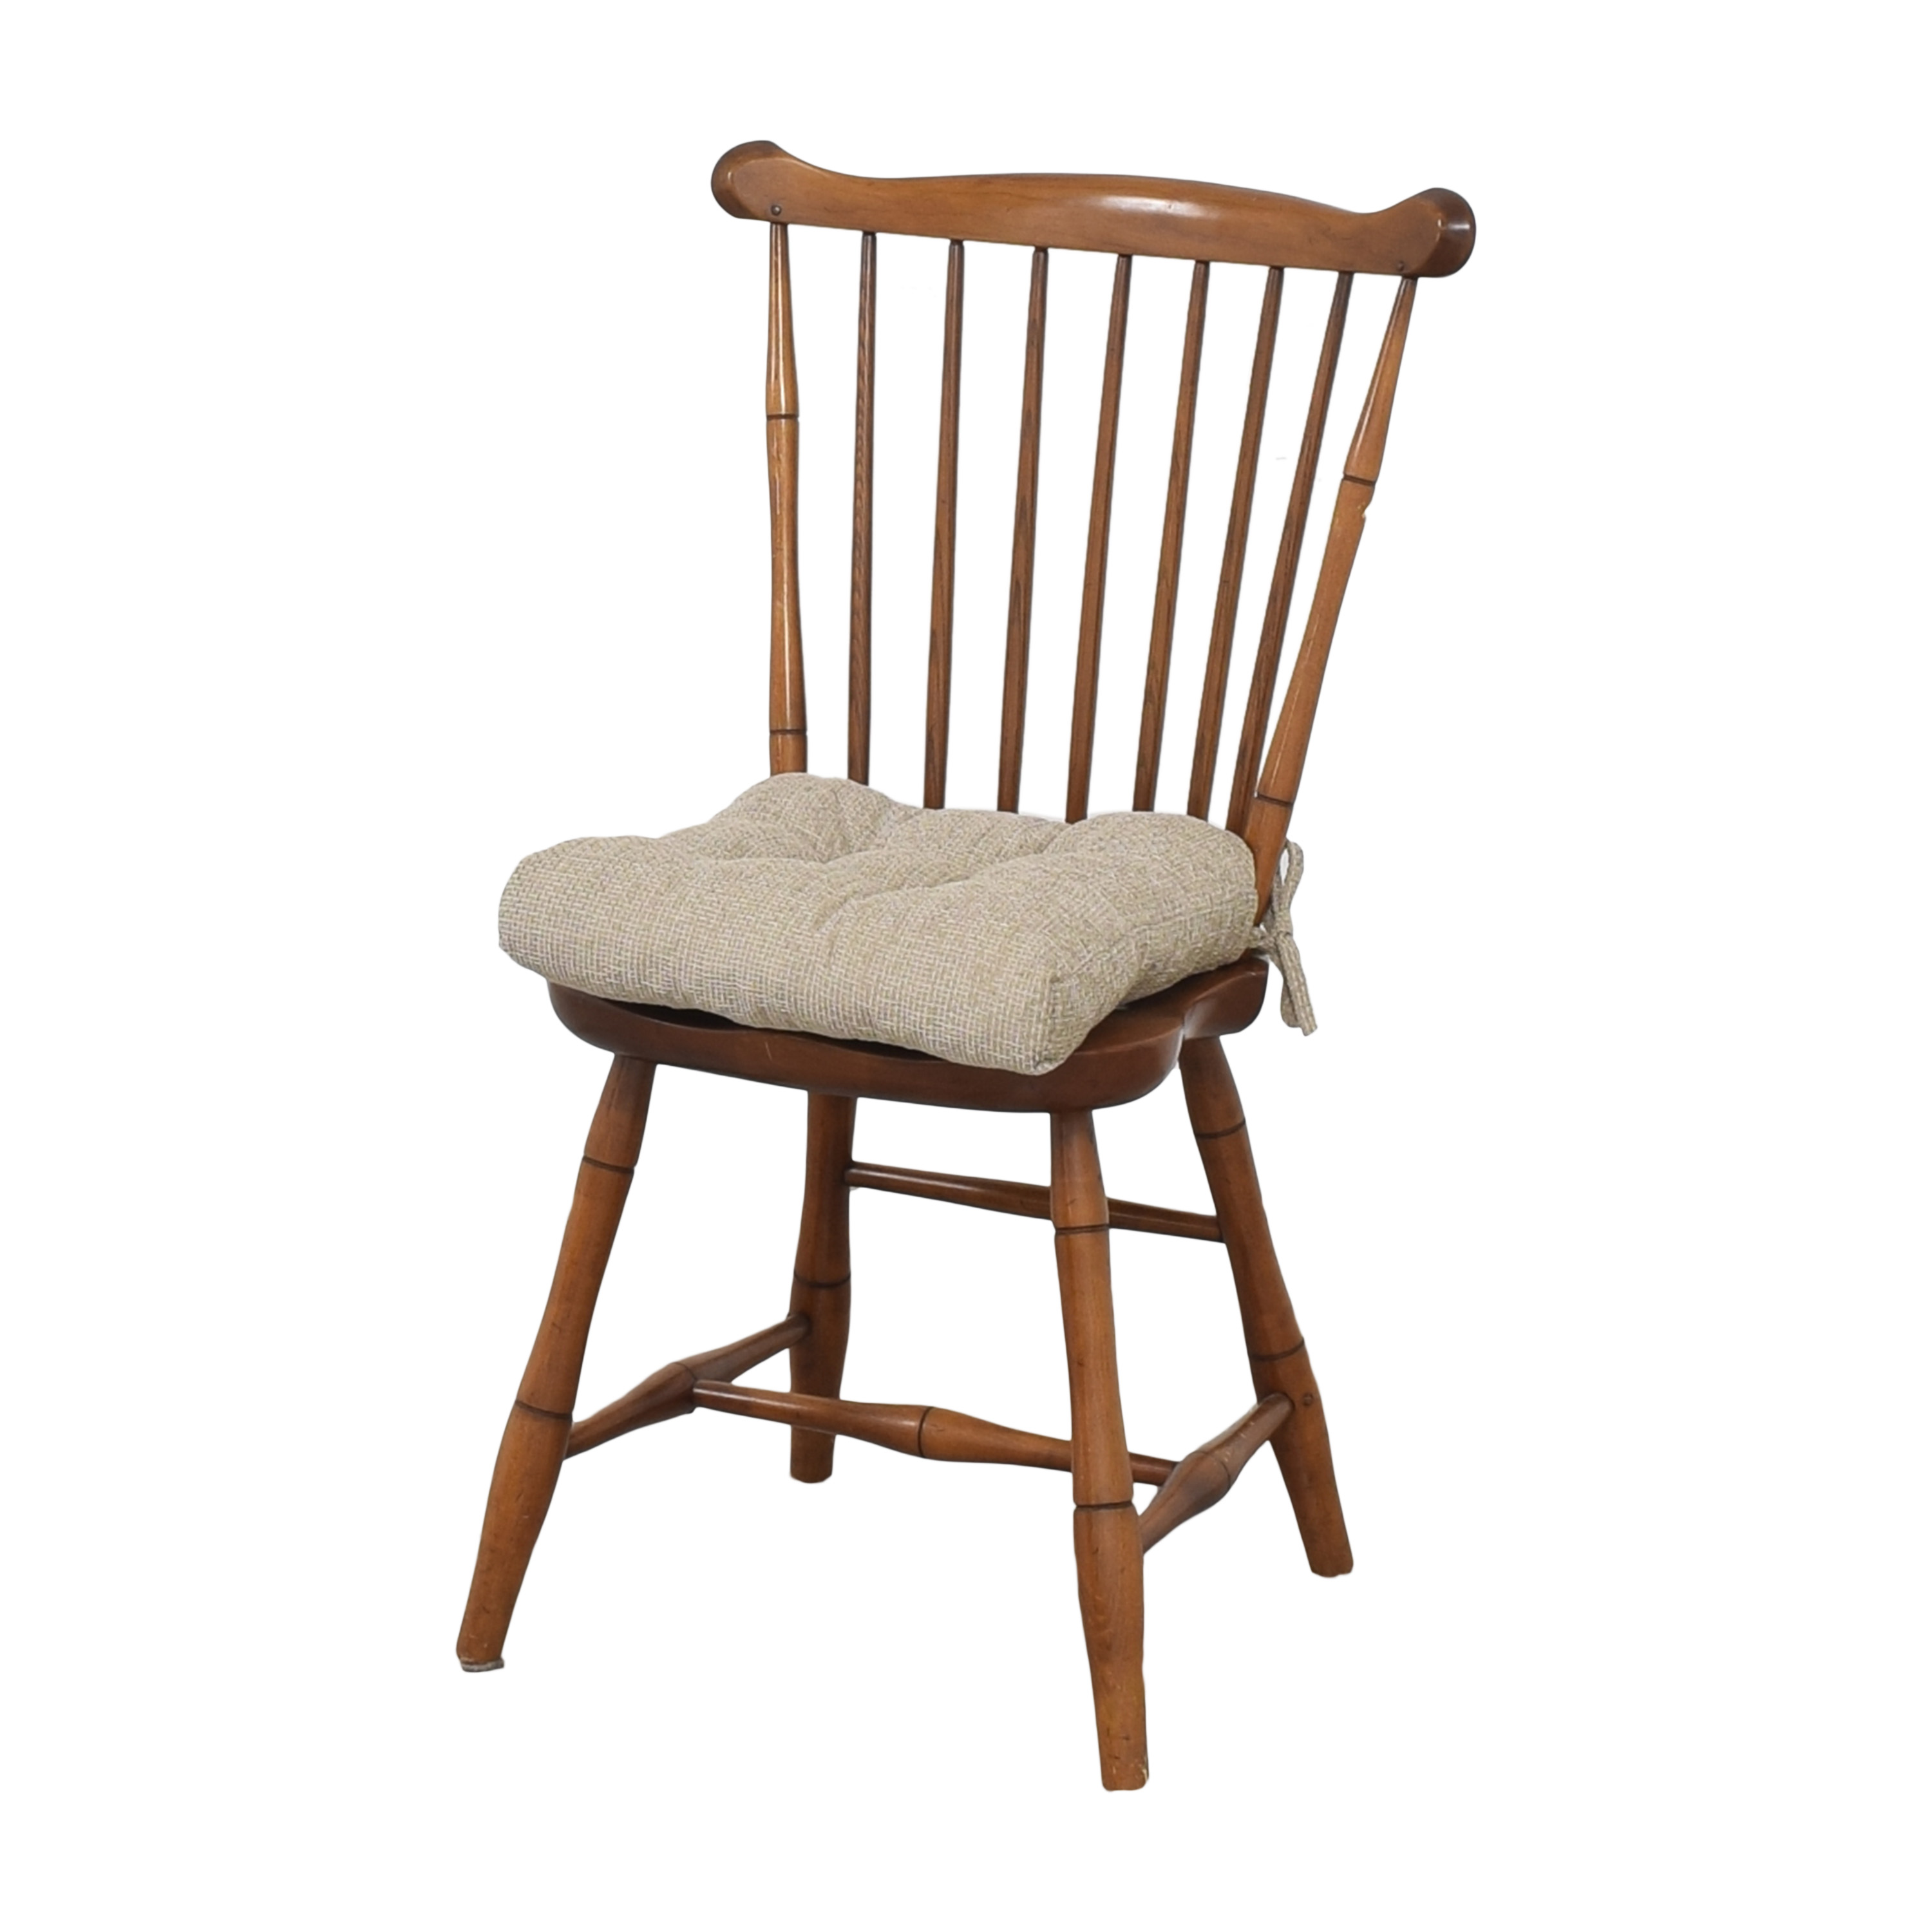 Stickley Furniture Stickley Furniture Dining Chairs used